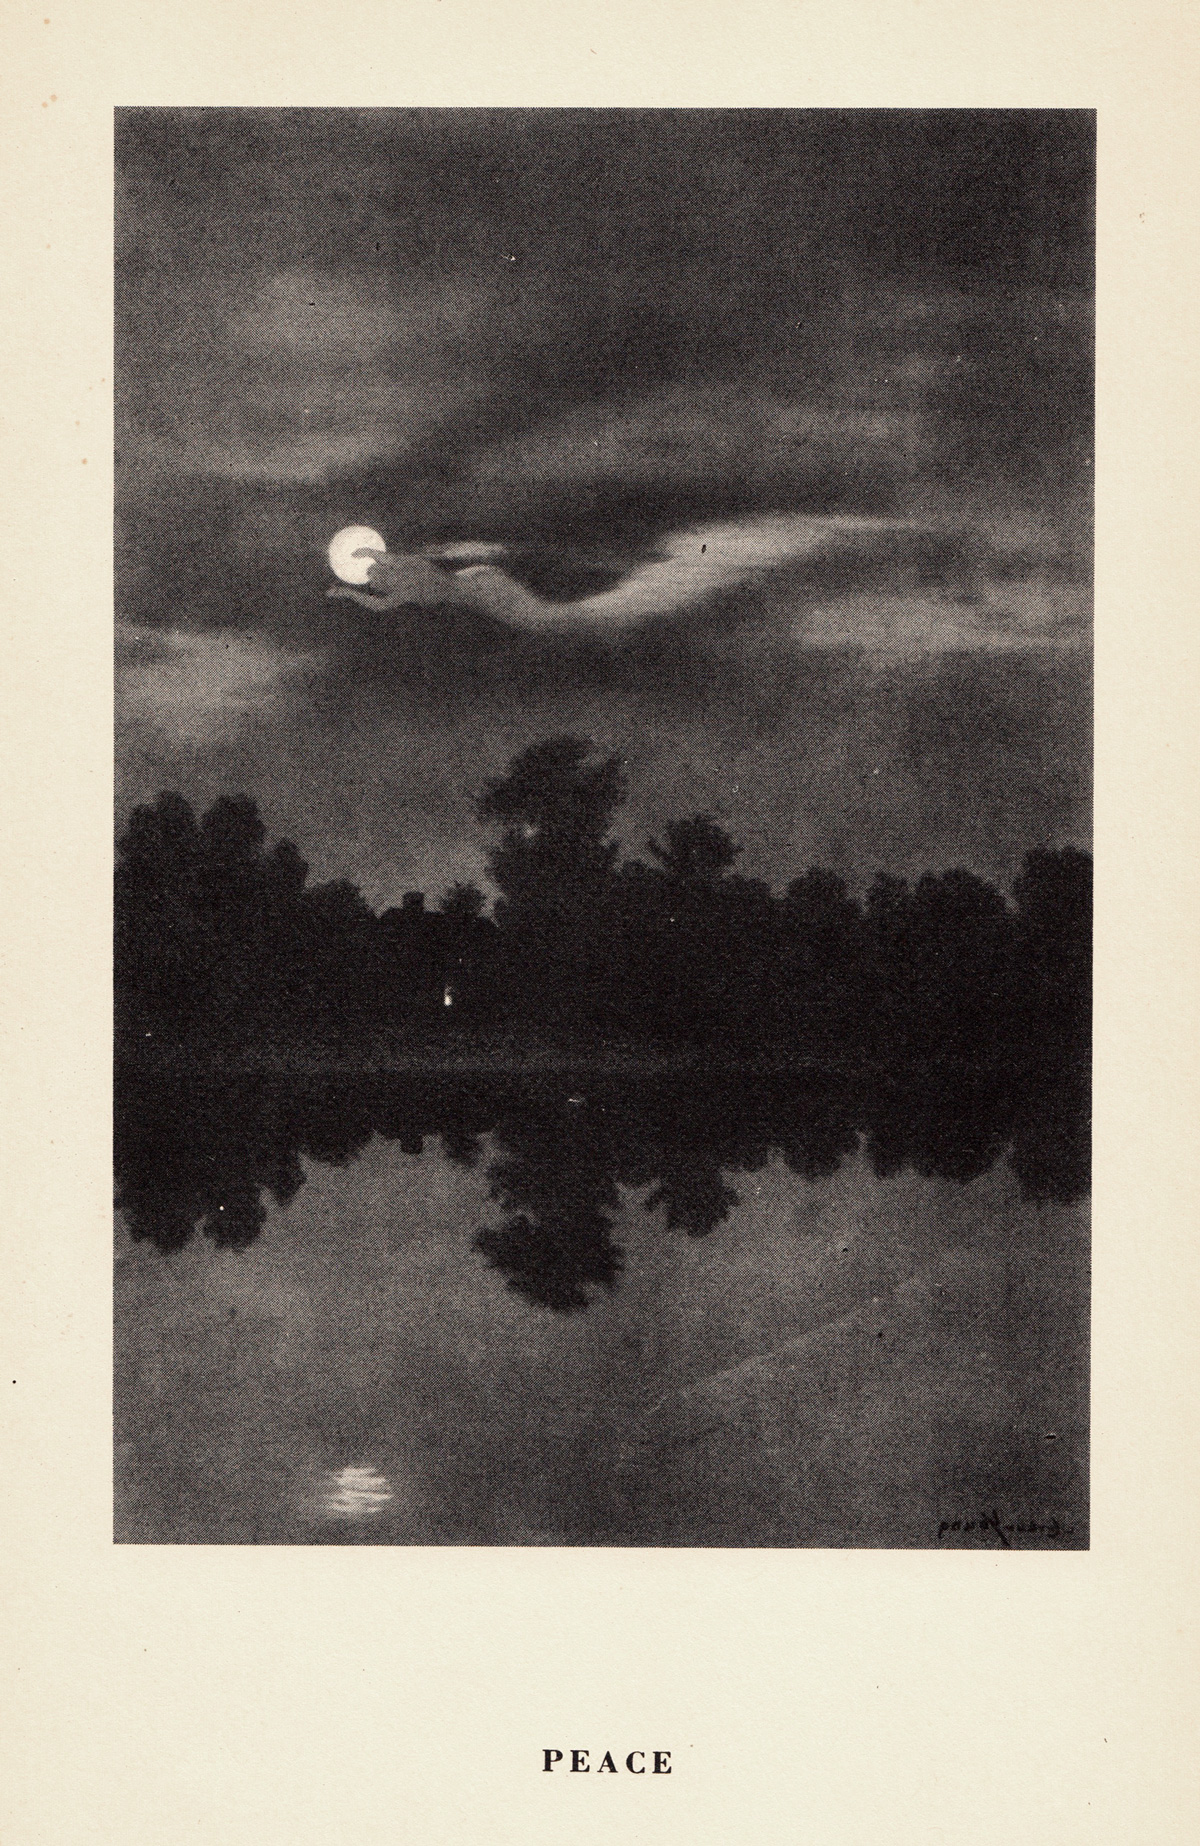 Art Young illustration called Peace, black and white trees reflected in a lake with clouds flowing across a full moon